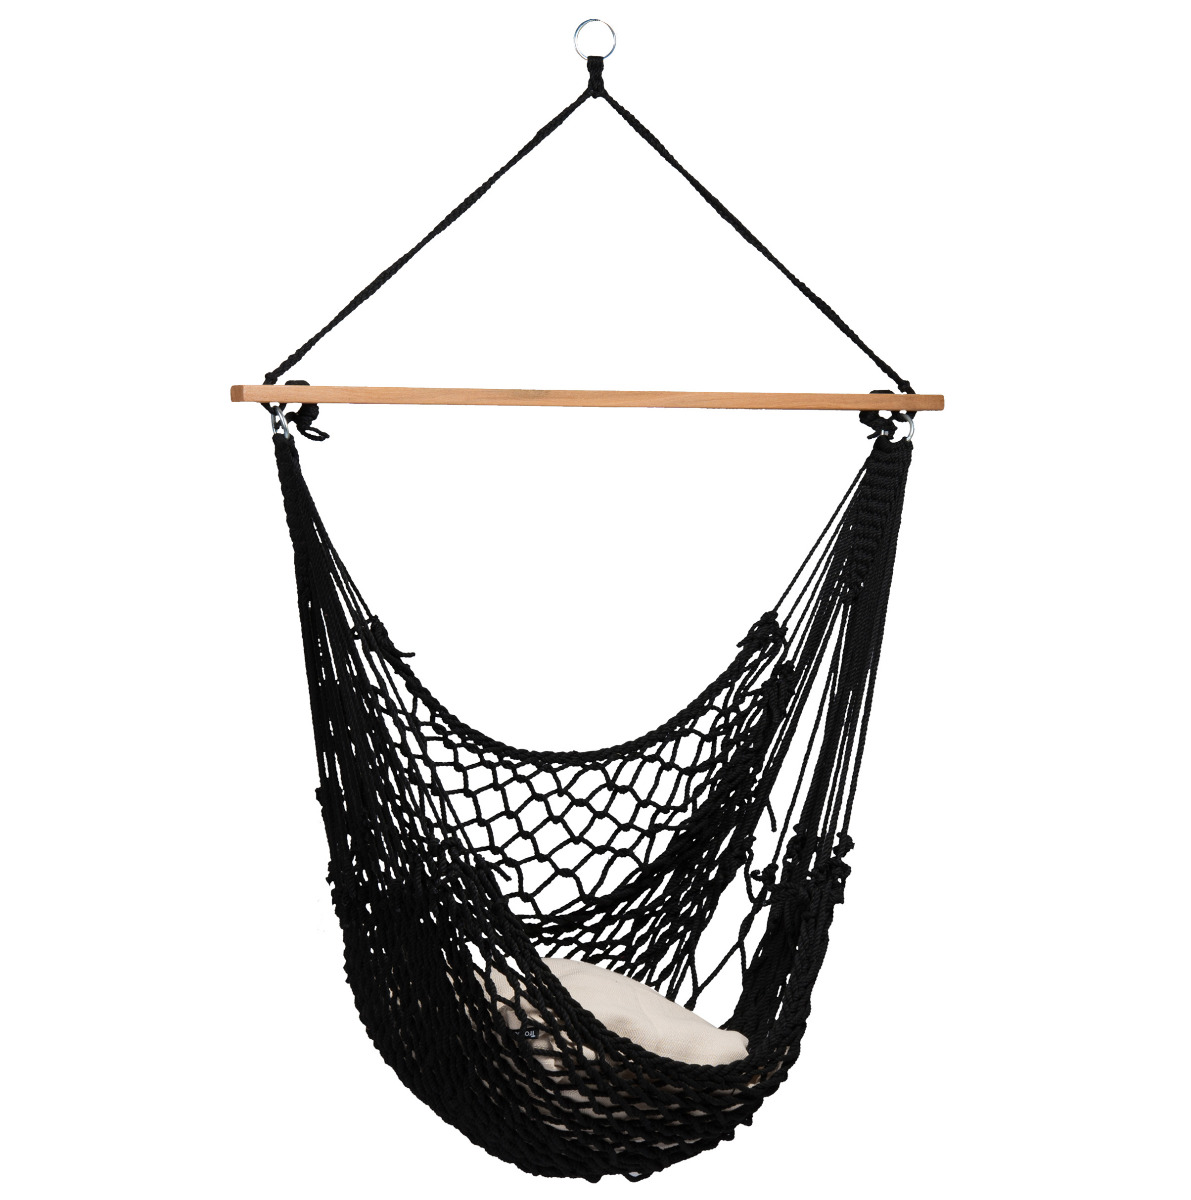 Hangstoel 'Rope' Black - Tropilex �